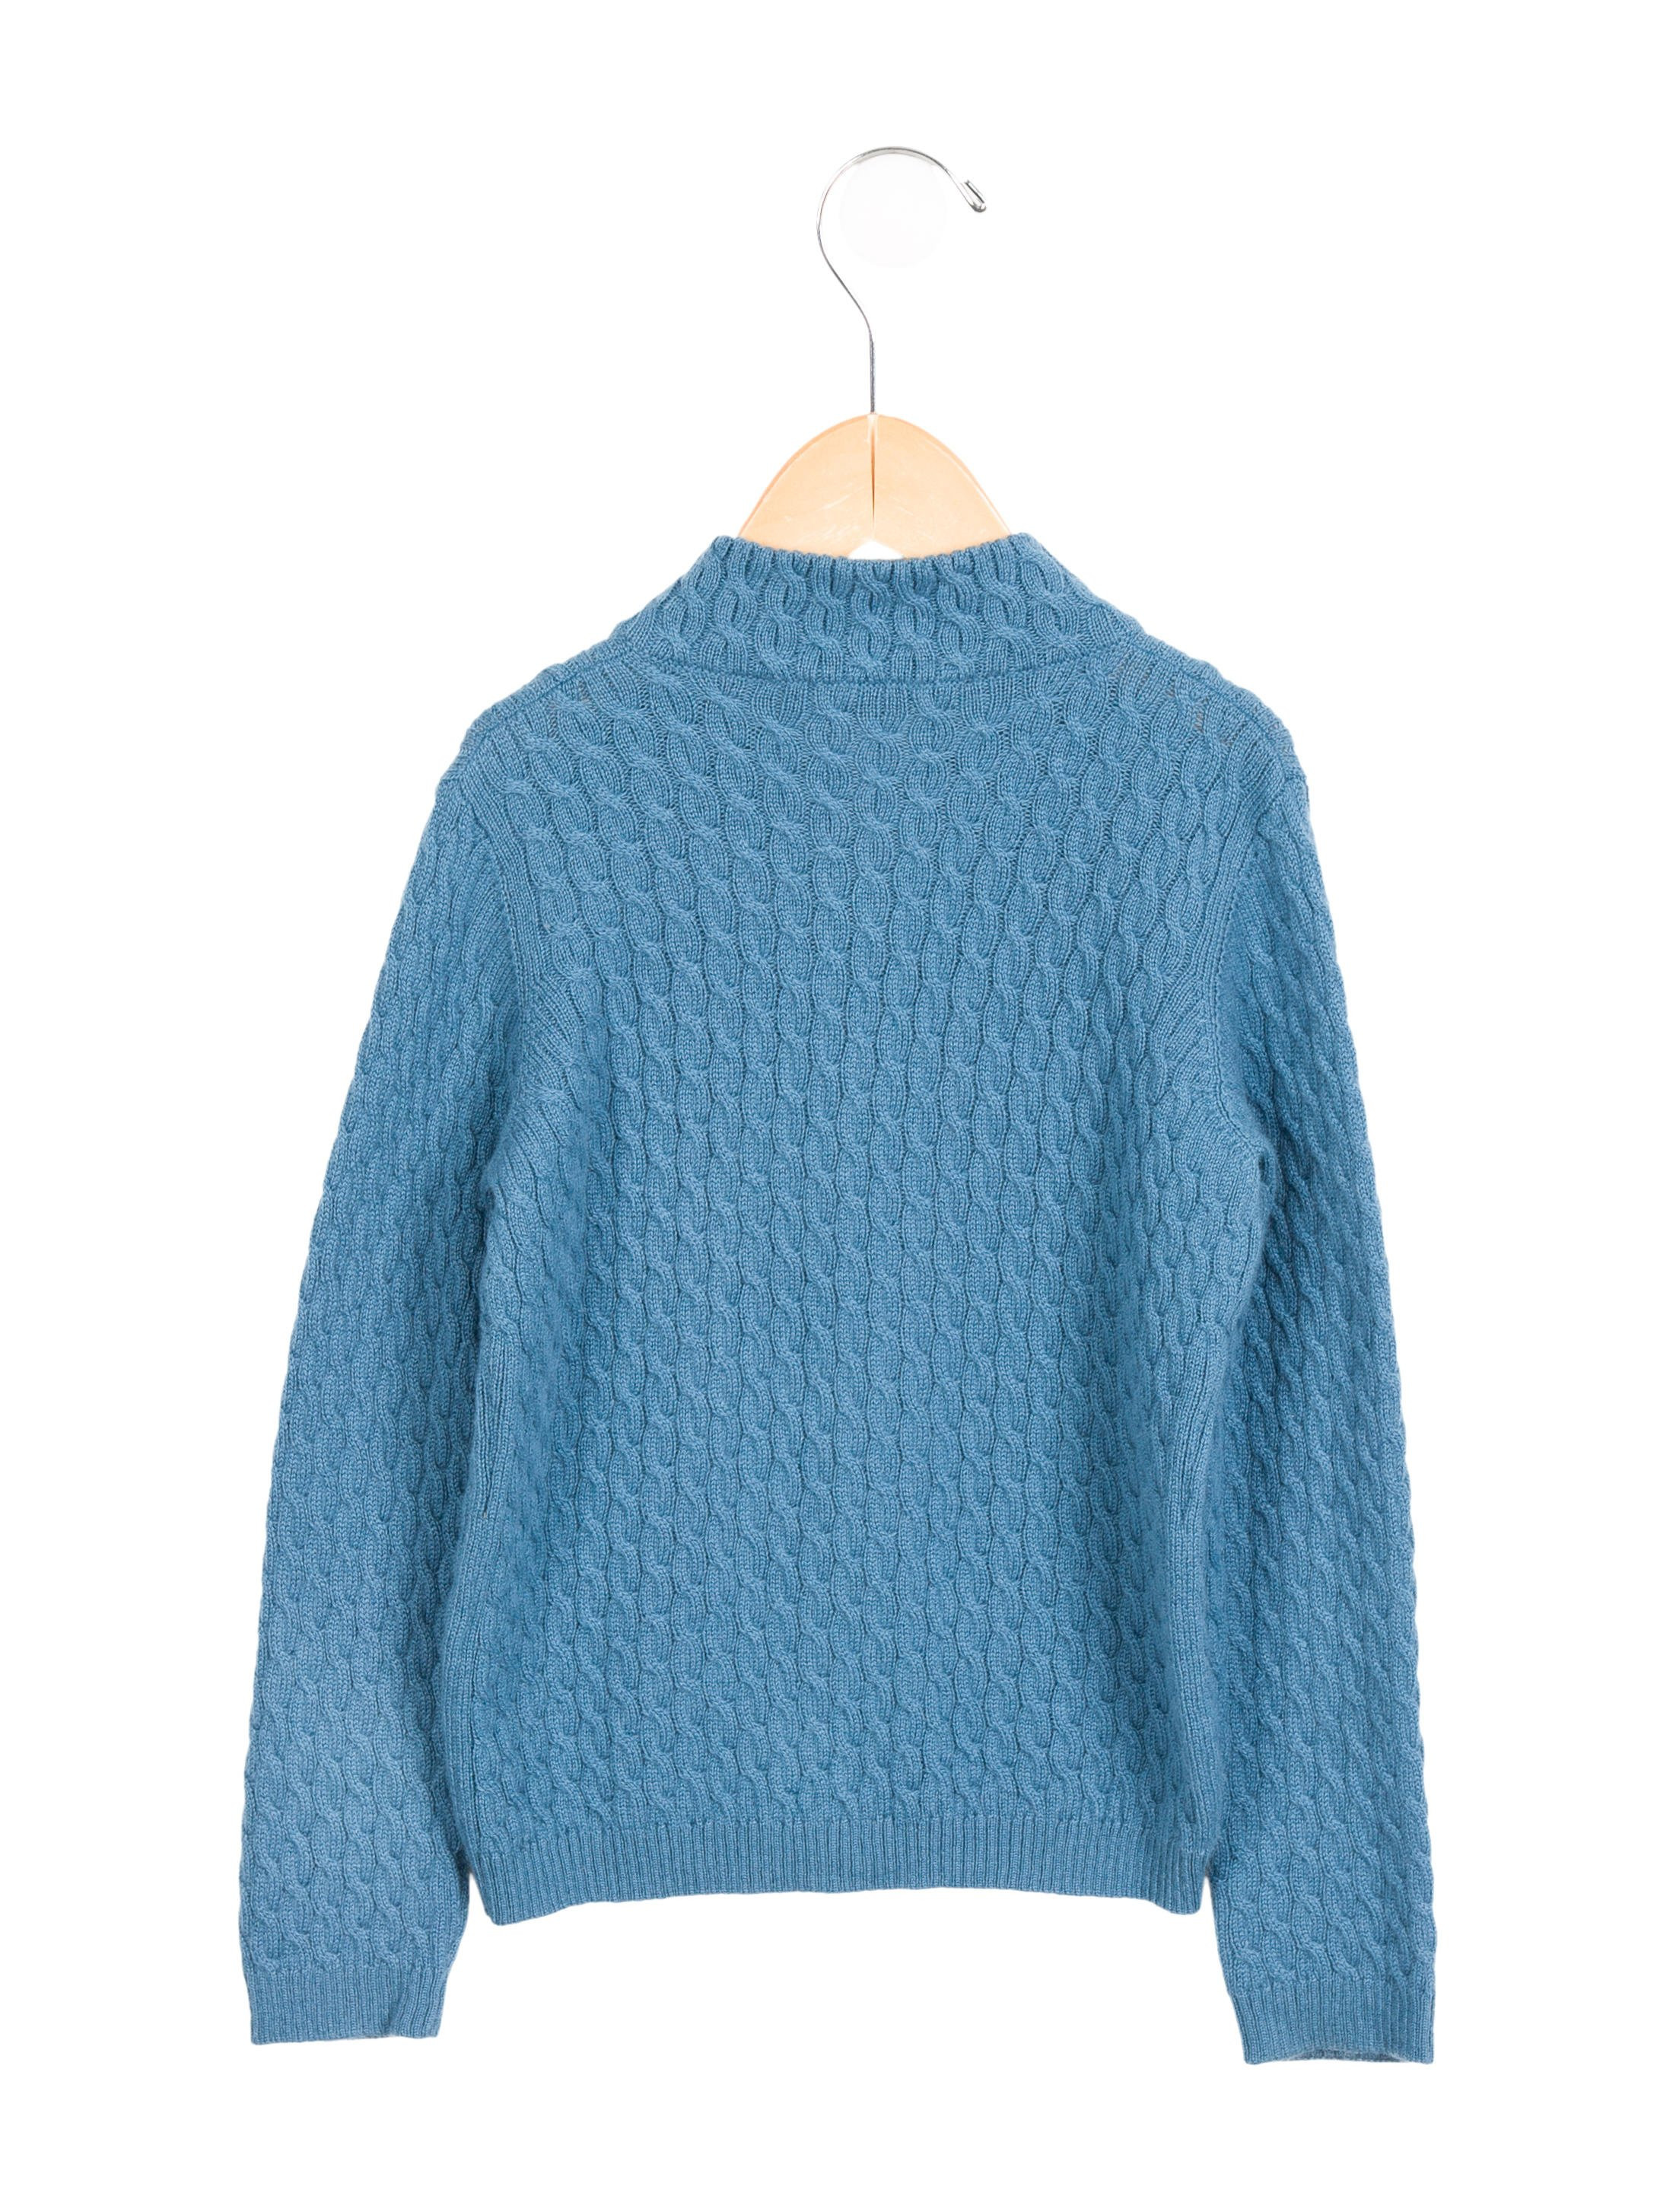 Elegant Loro Piana Boys Cashmere Cable Knit Sweater Boys Boys Knit Sweater Of Lovely 50 Models Boys Knit Sweater